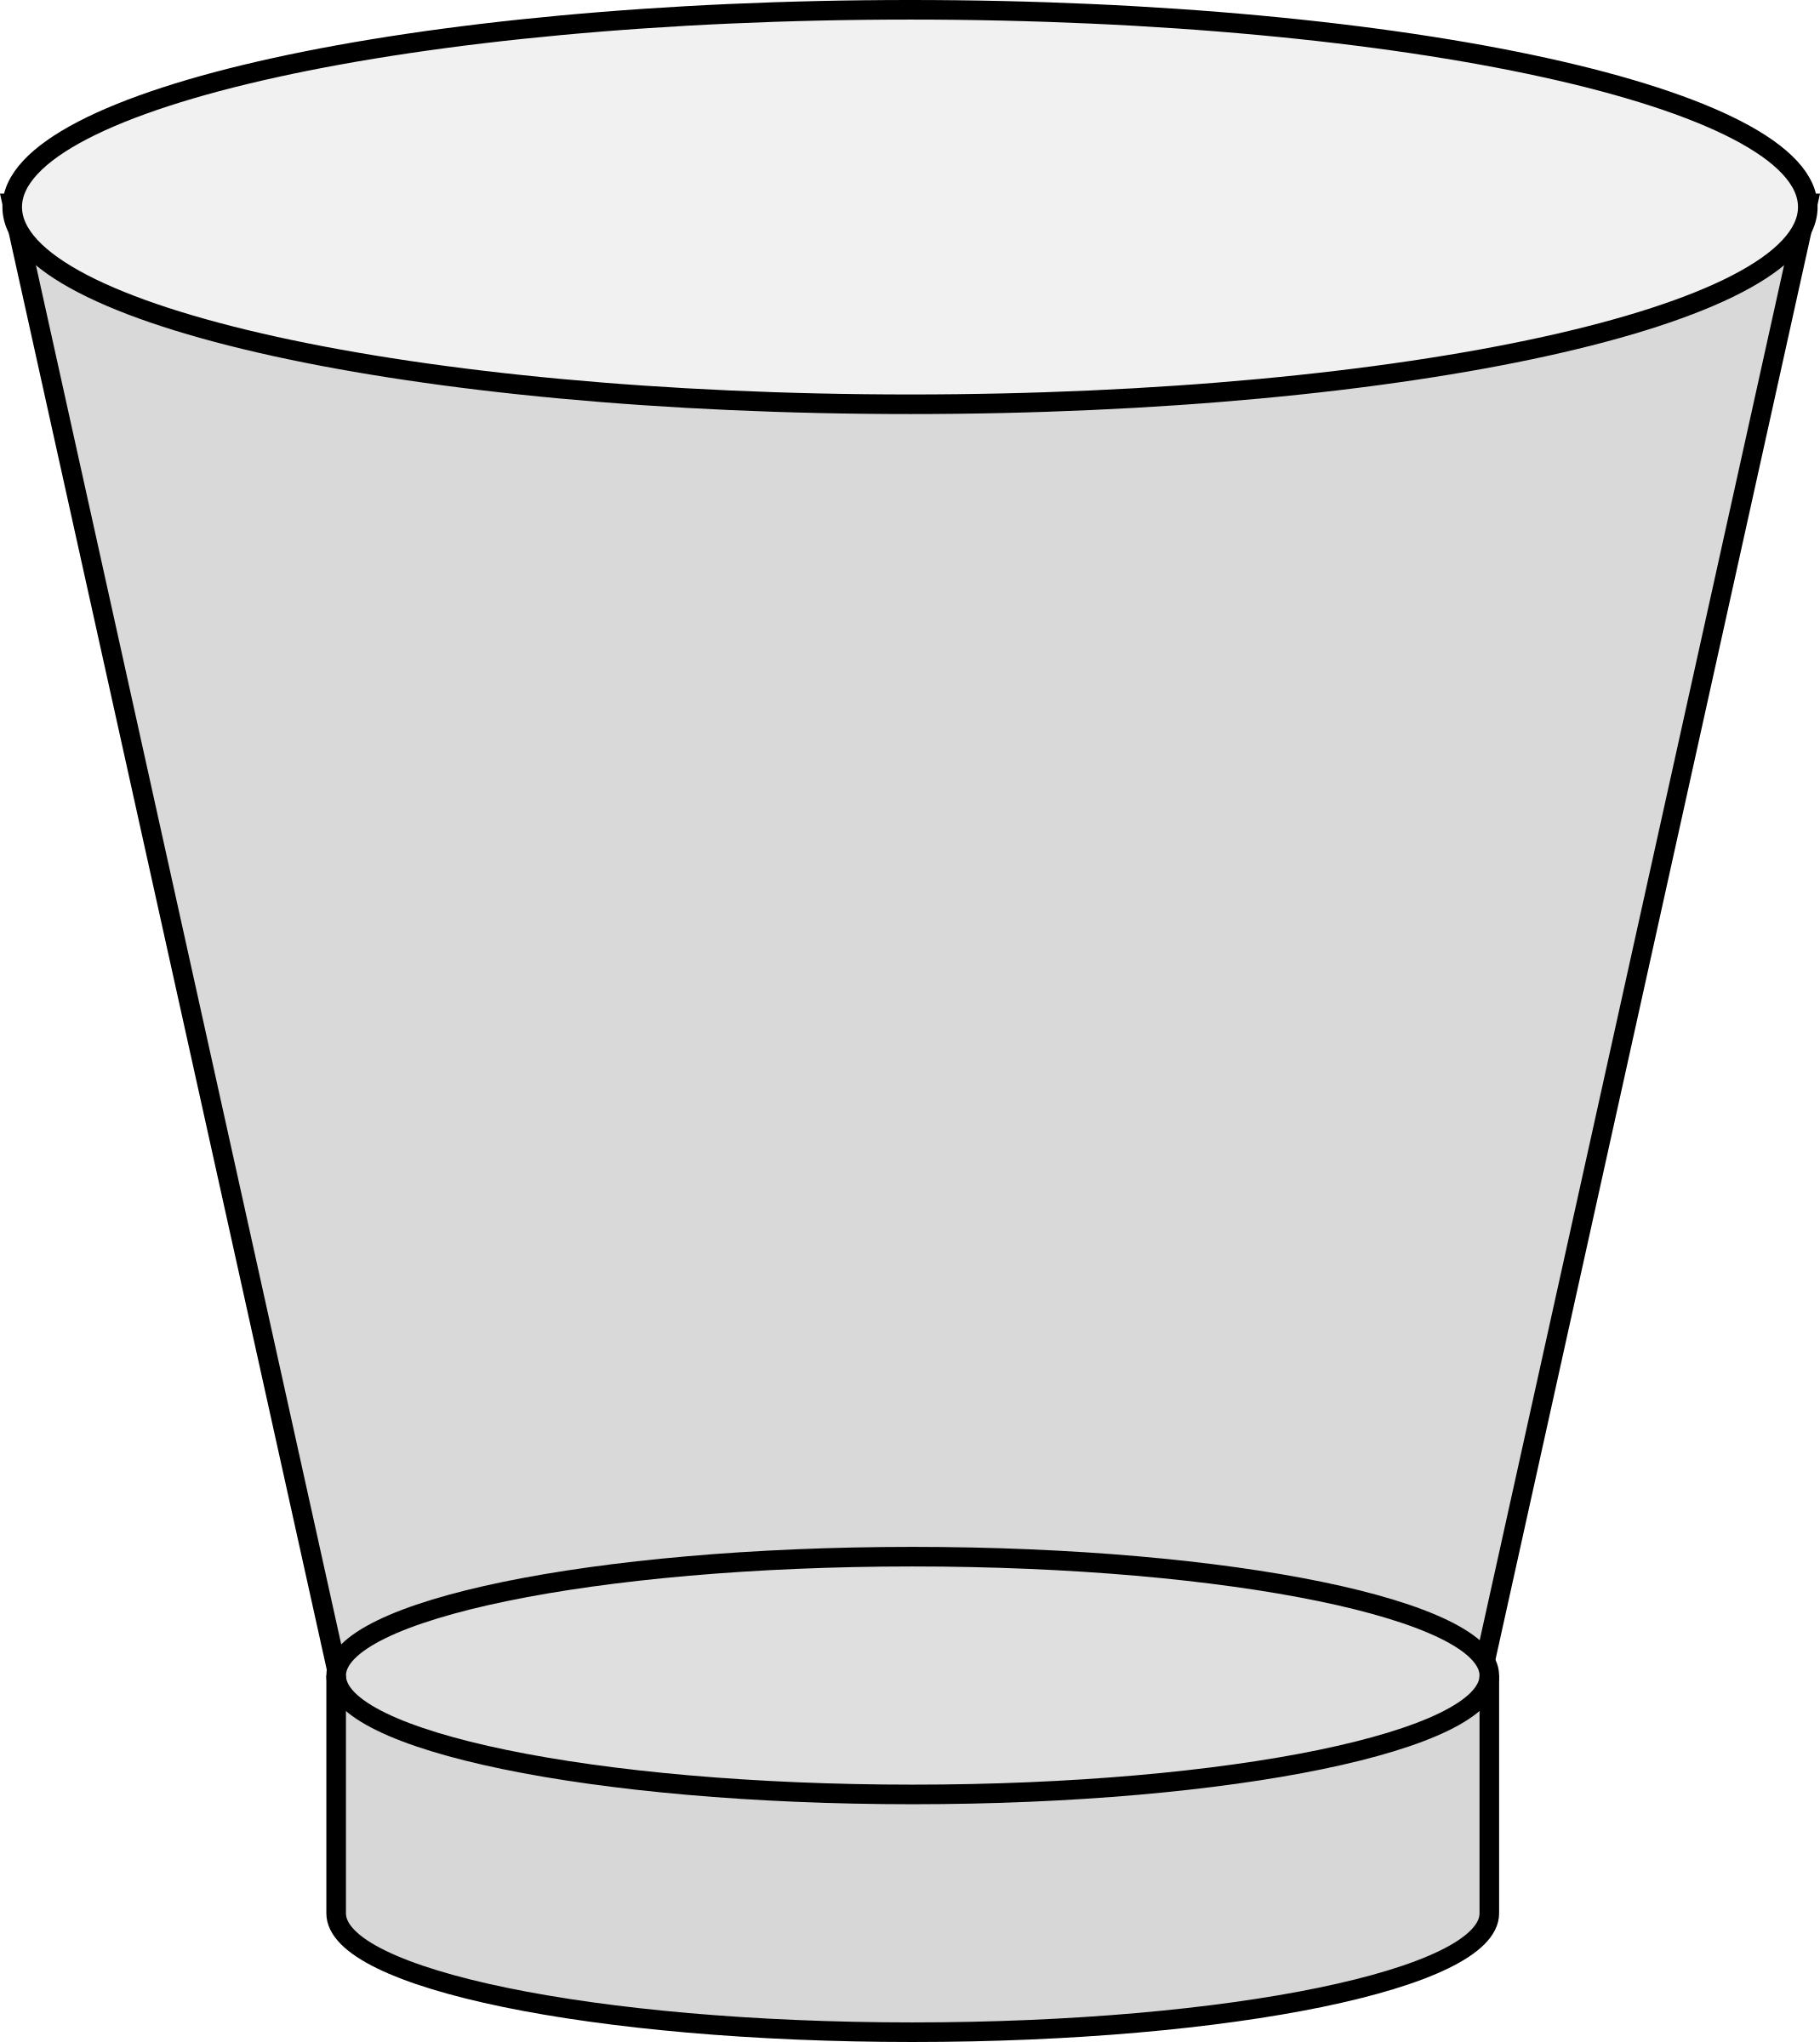 Shot glass big image. Thoughts clipart empty